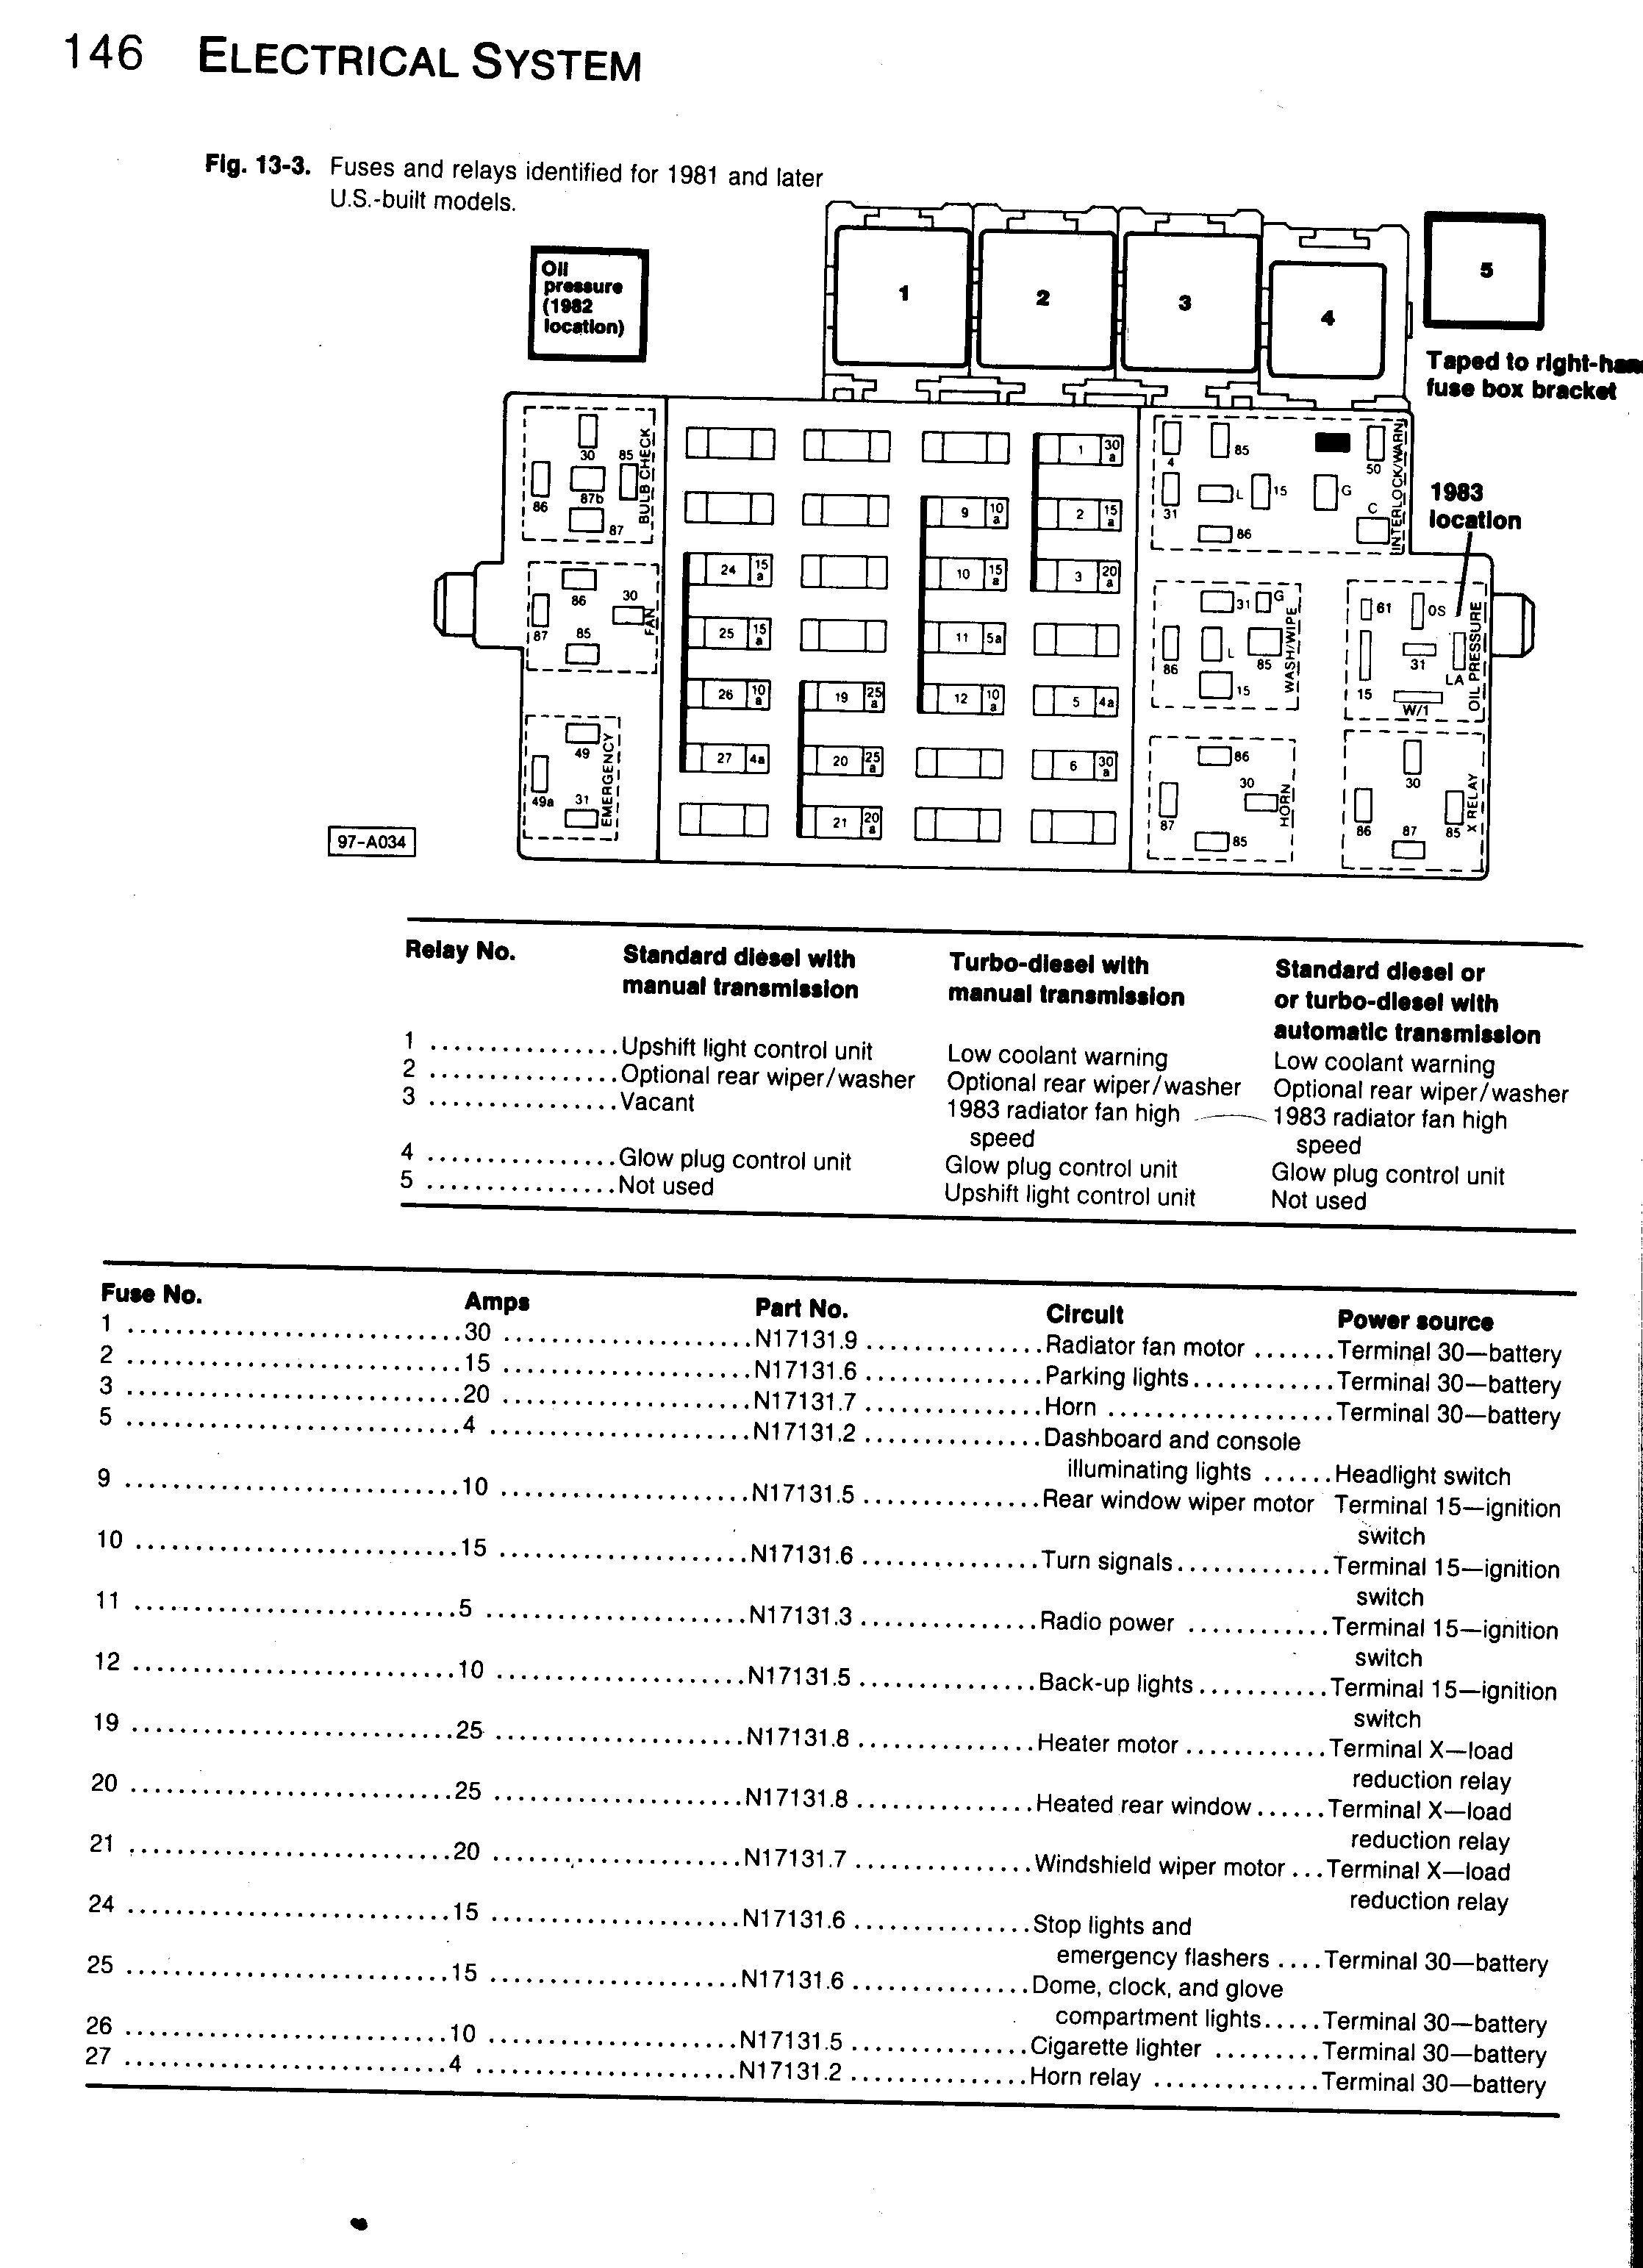 05 ford f 350 fuse diagram